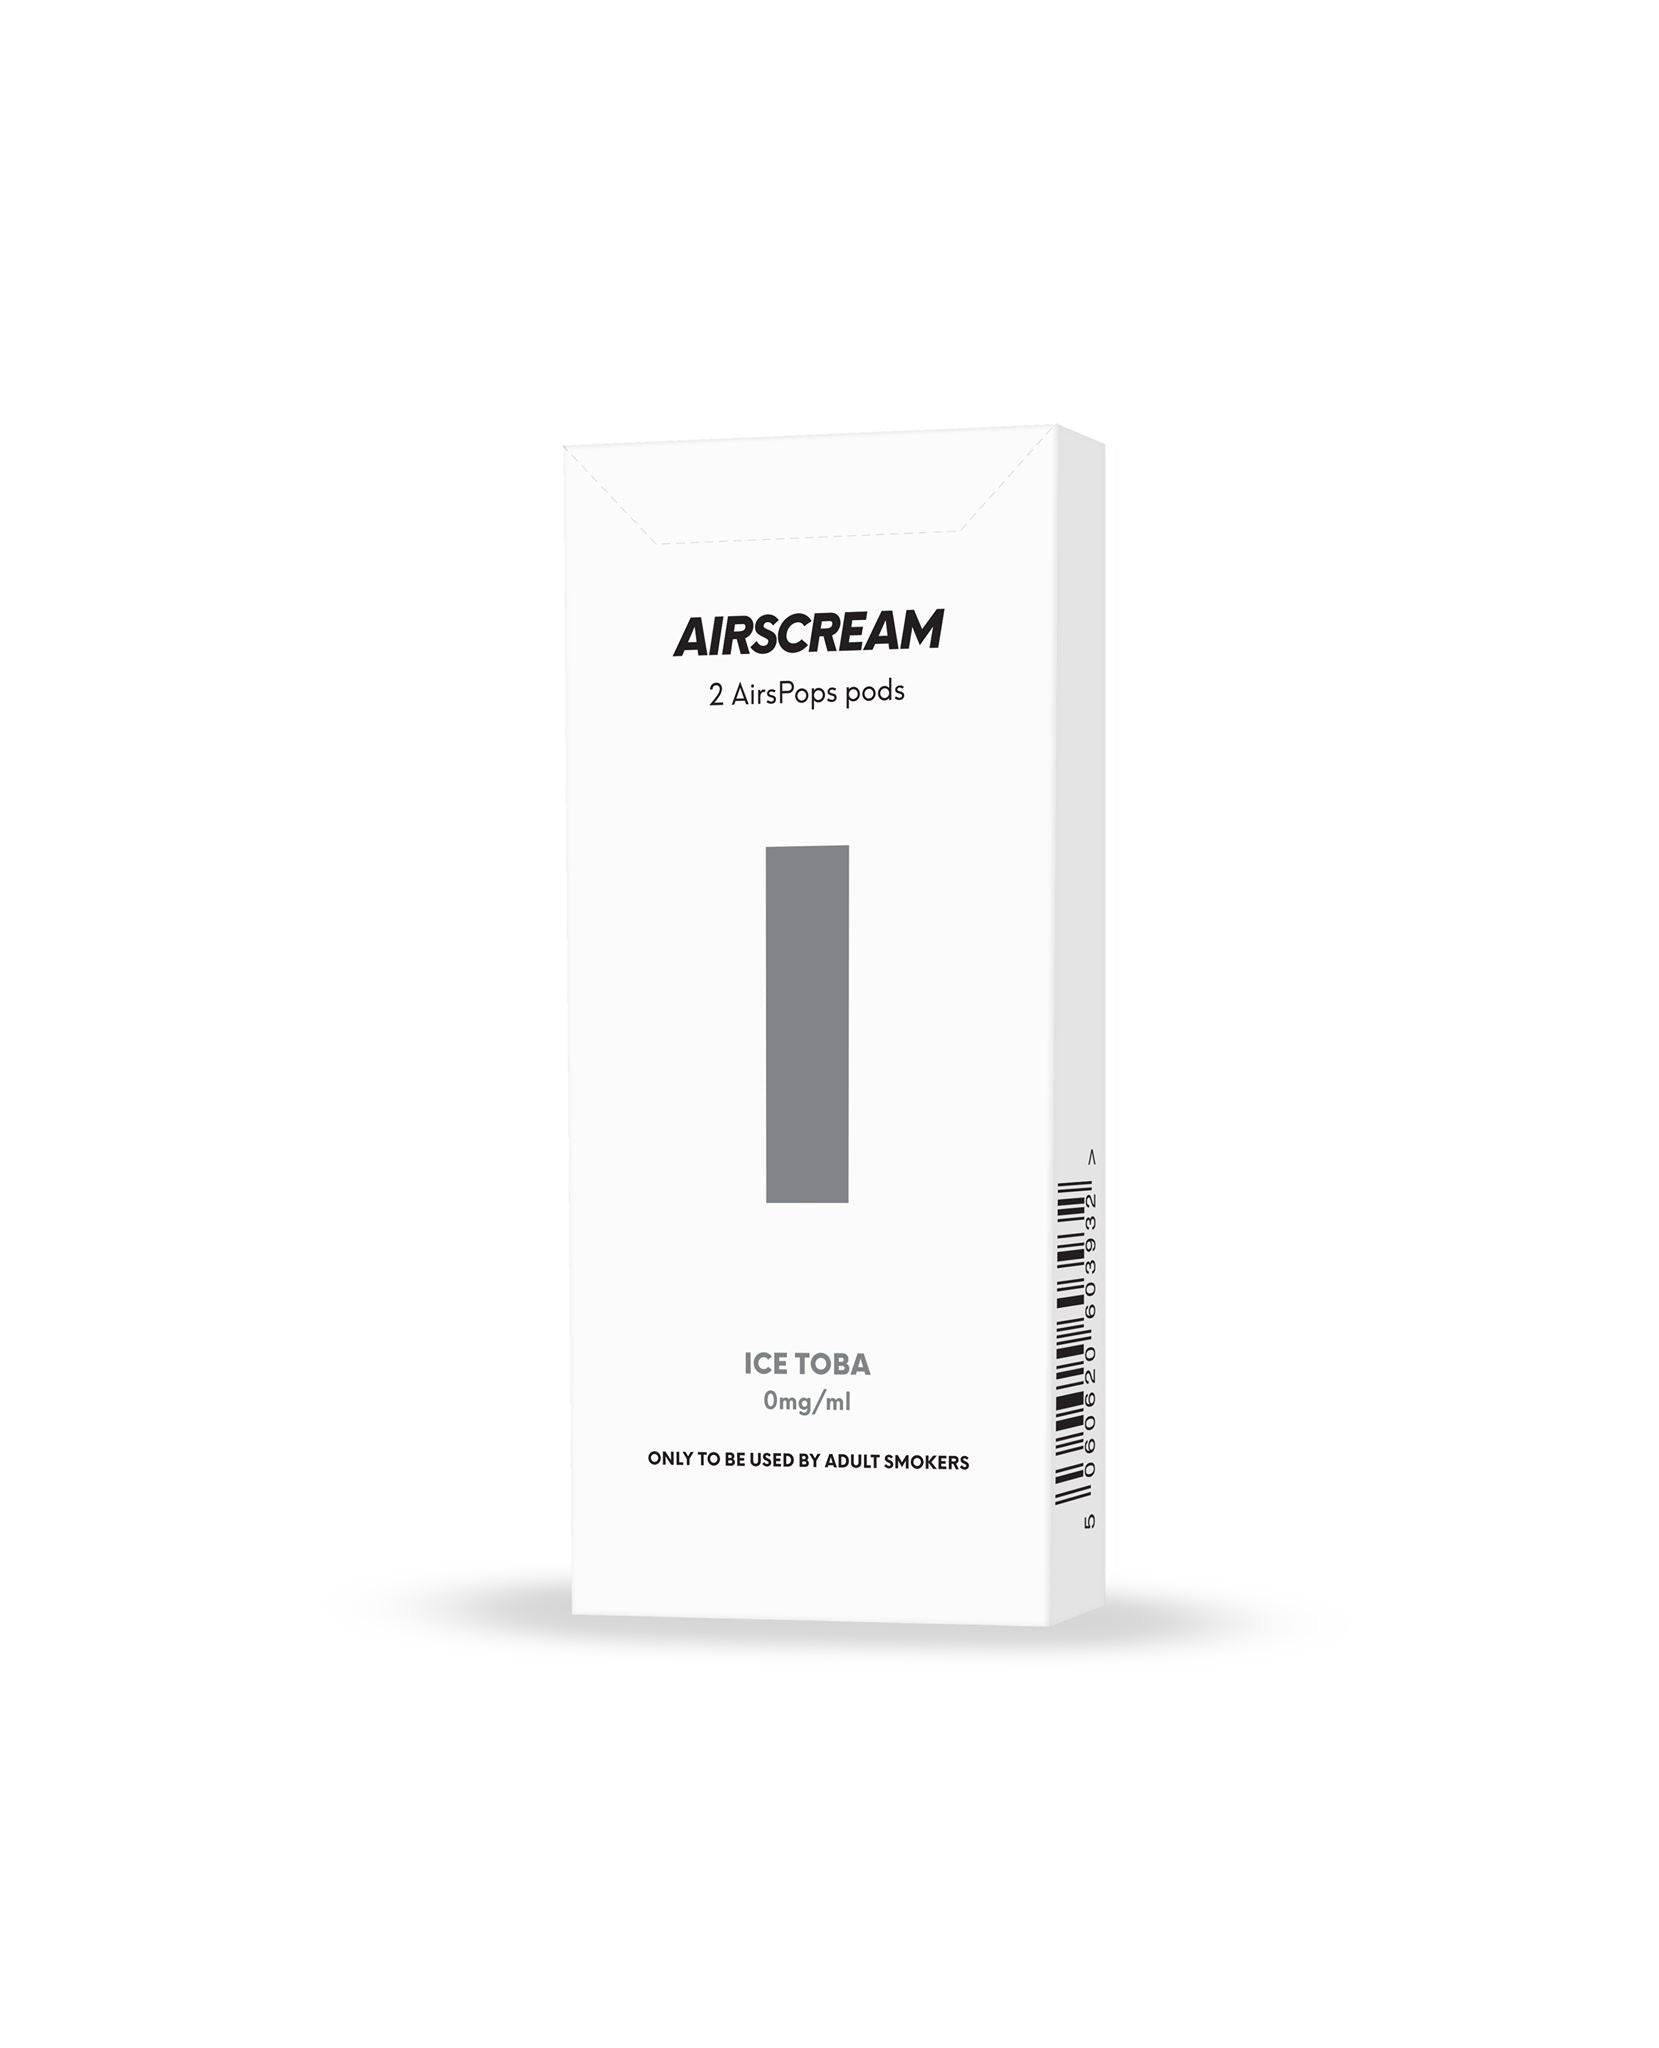 Airscream AirsPops Cartridge (2 Pods) - ICE TOBA - Australia Vape Company